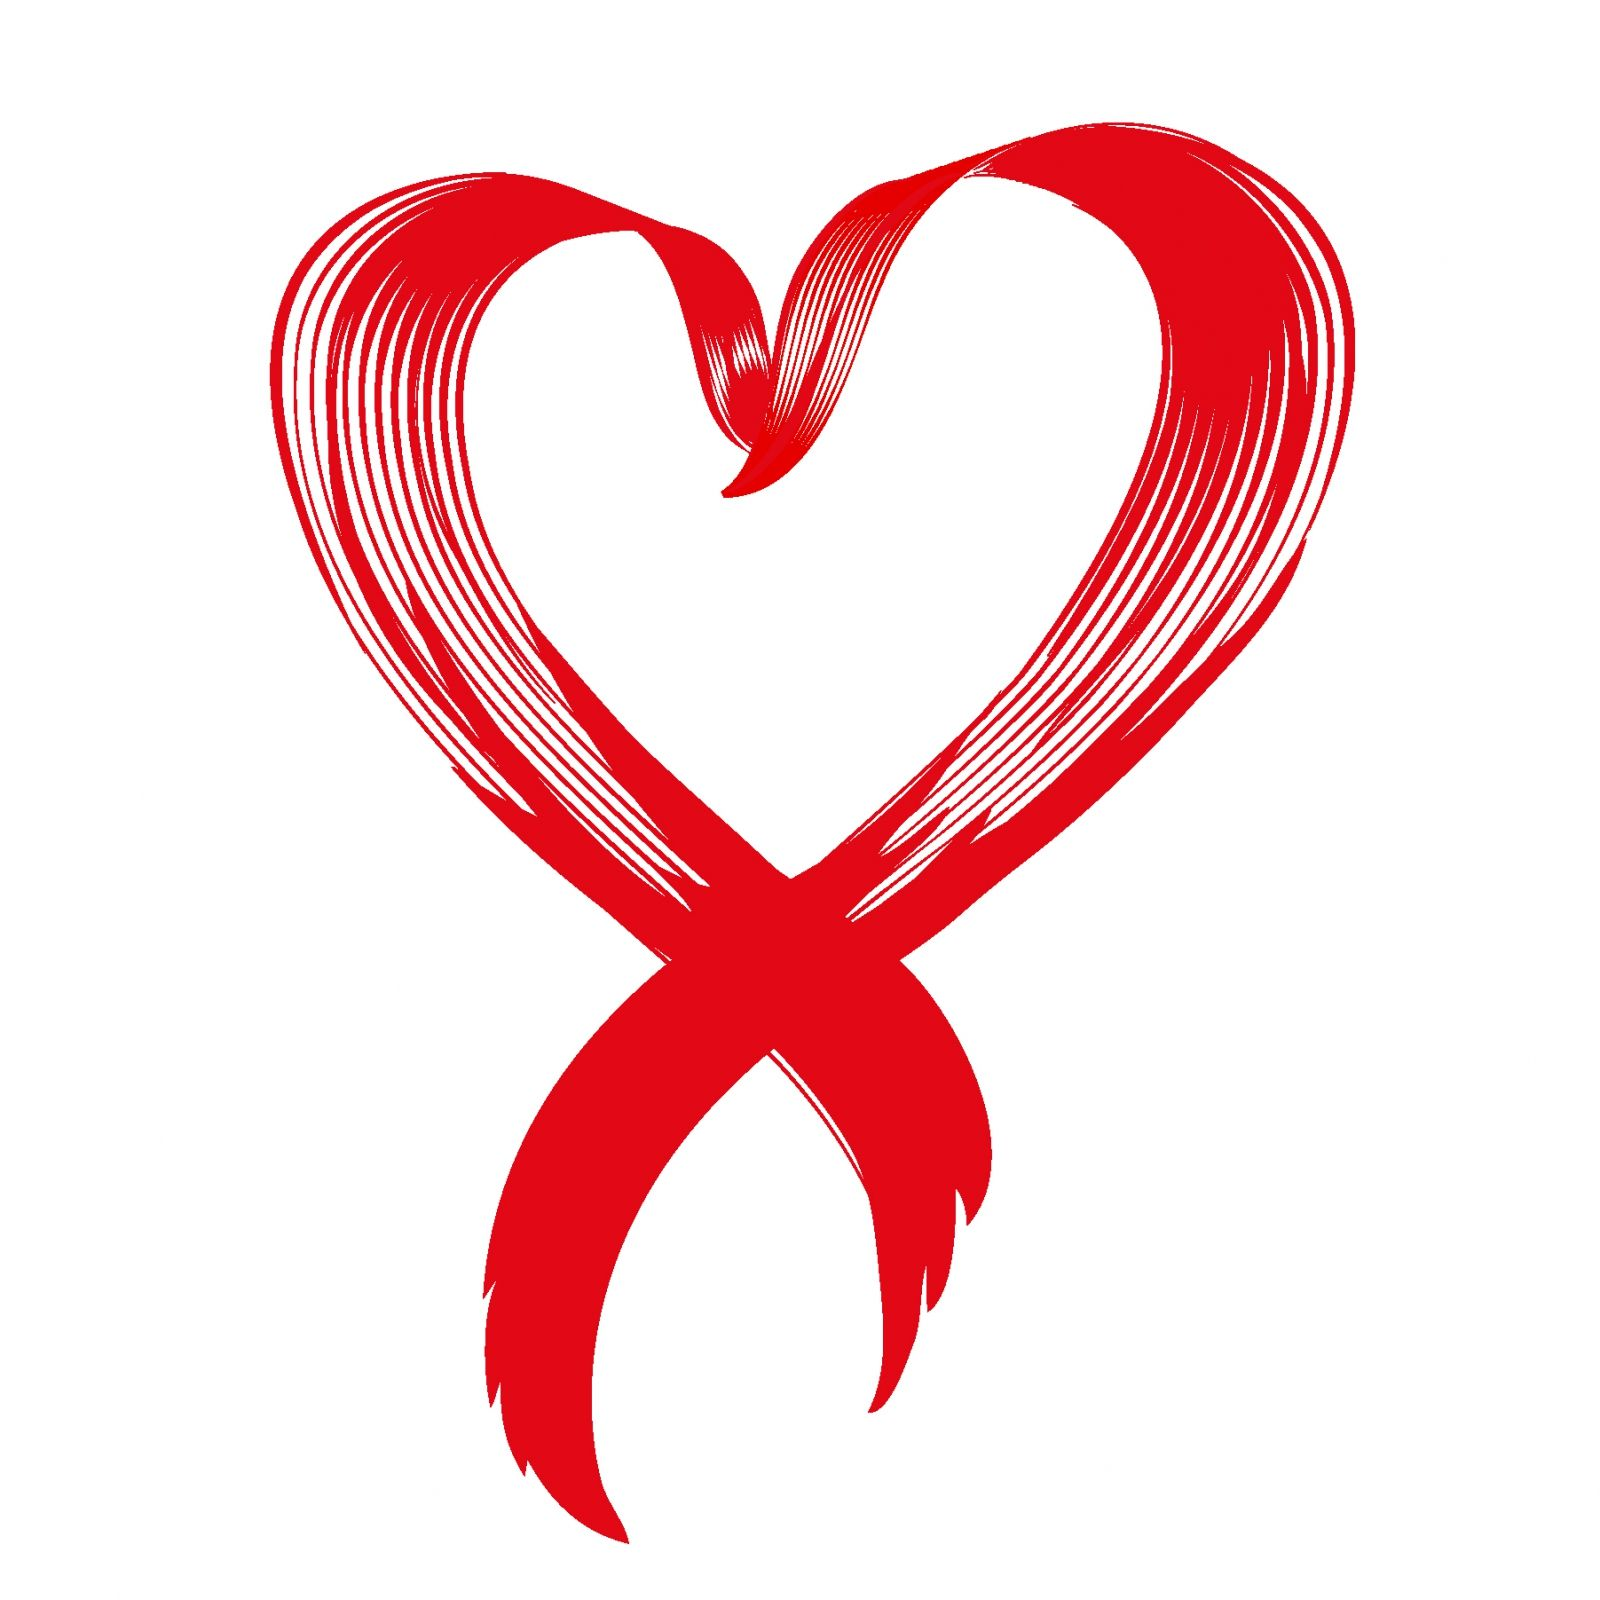 Cancer clipart heart. Red ribbon pink awareness